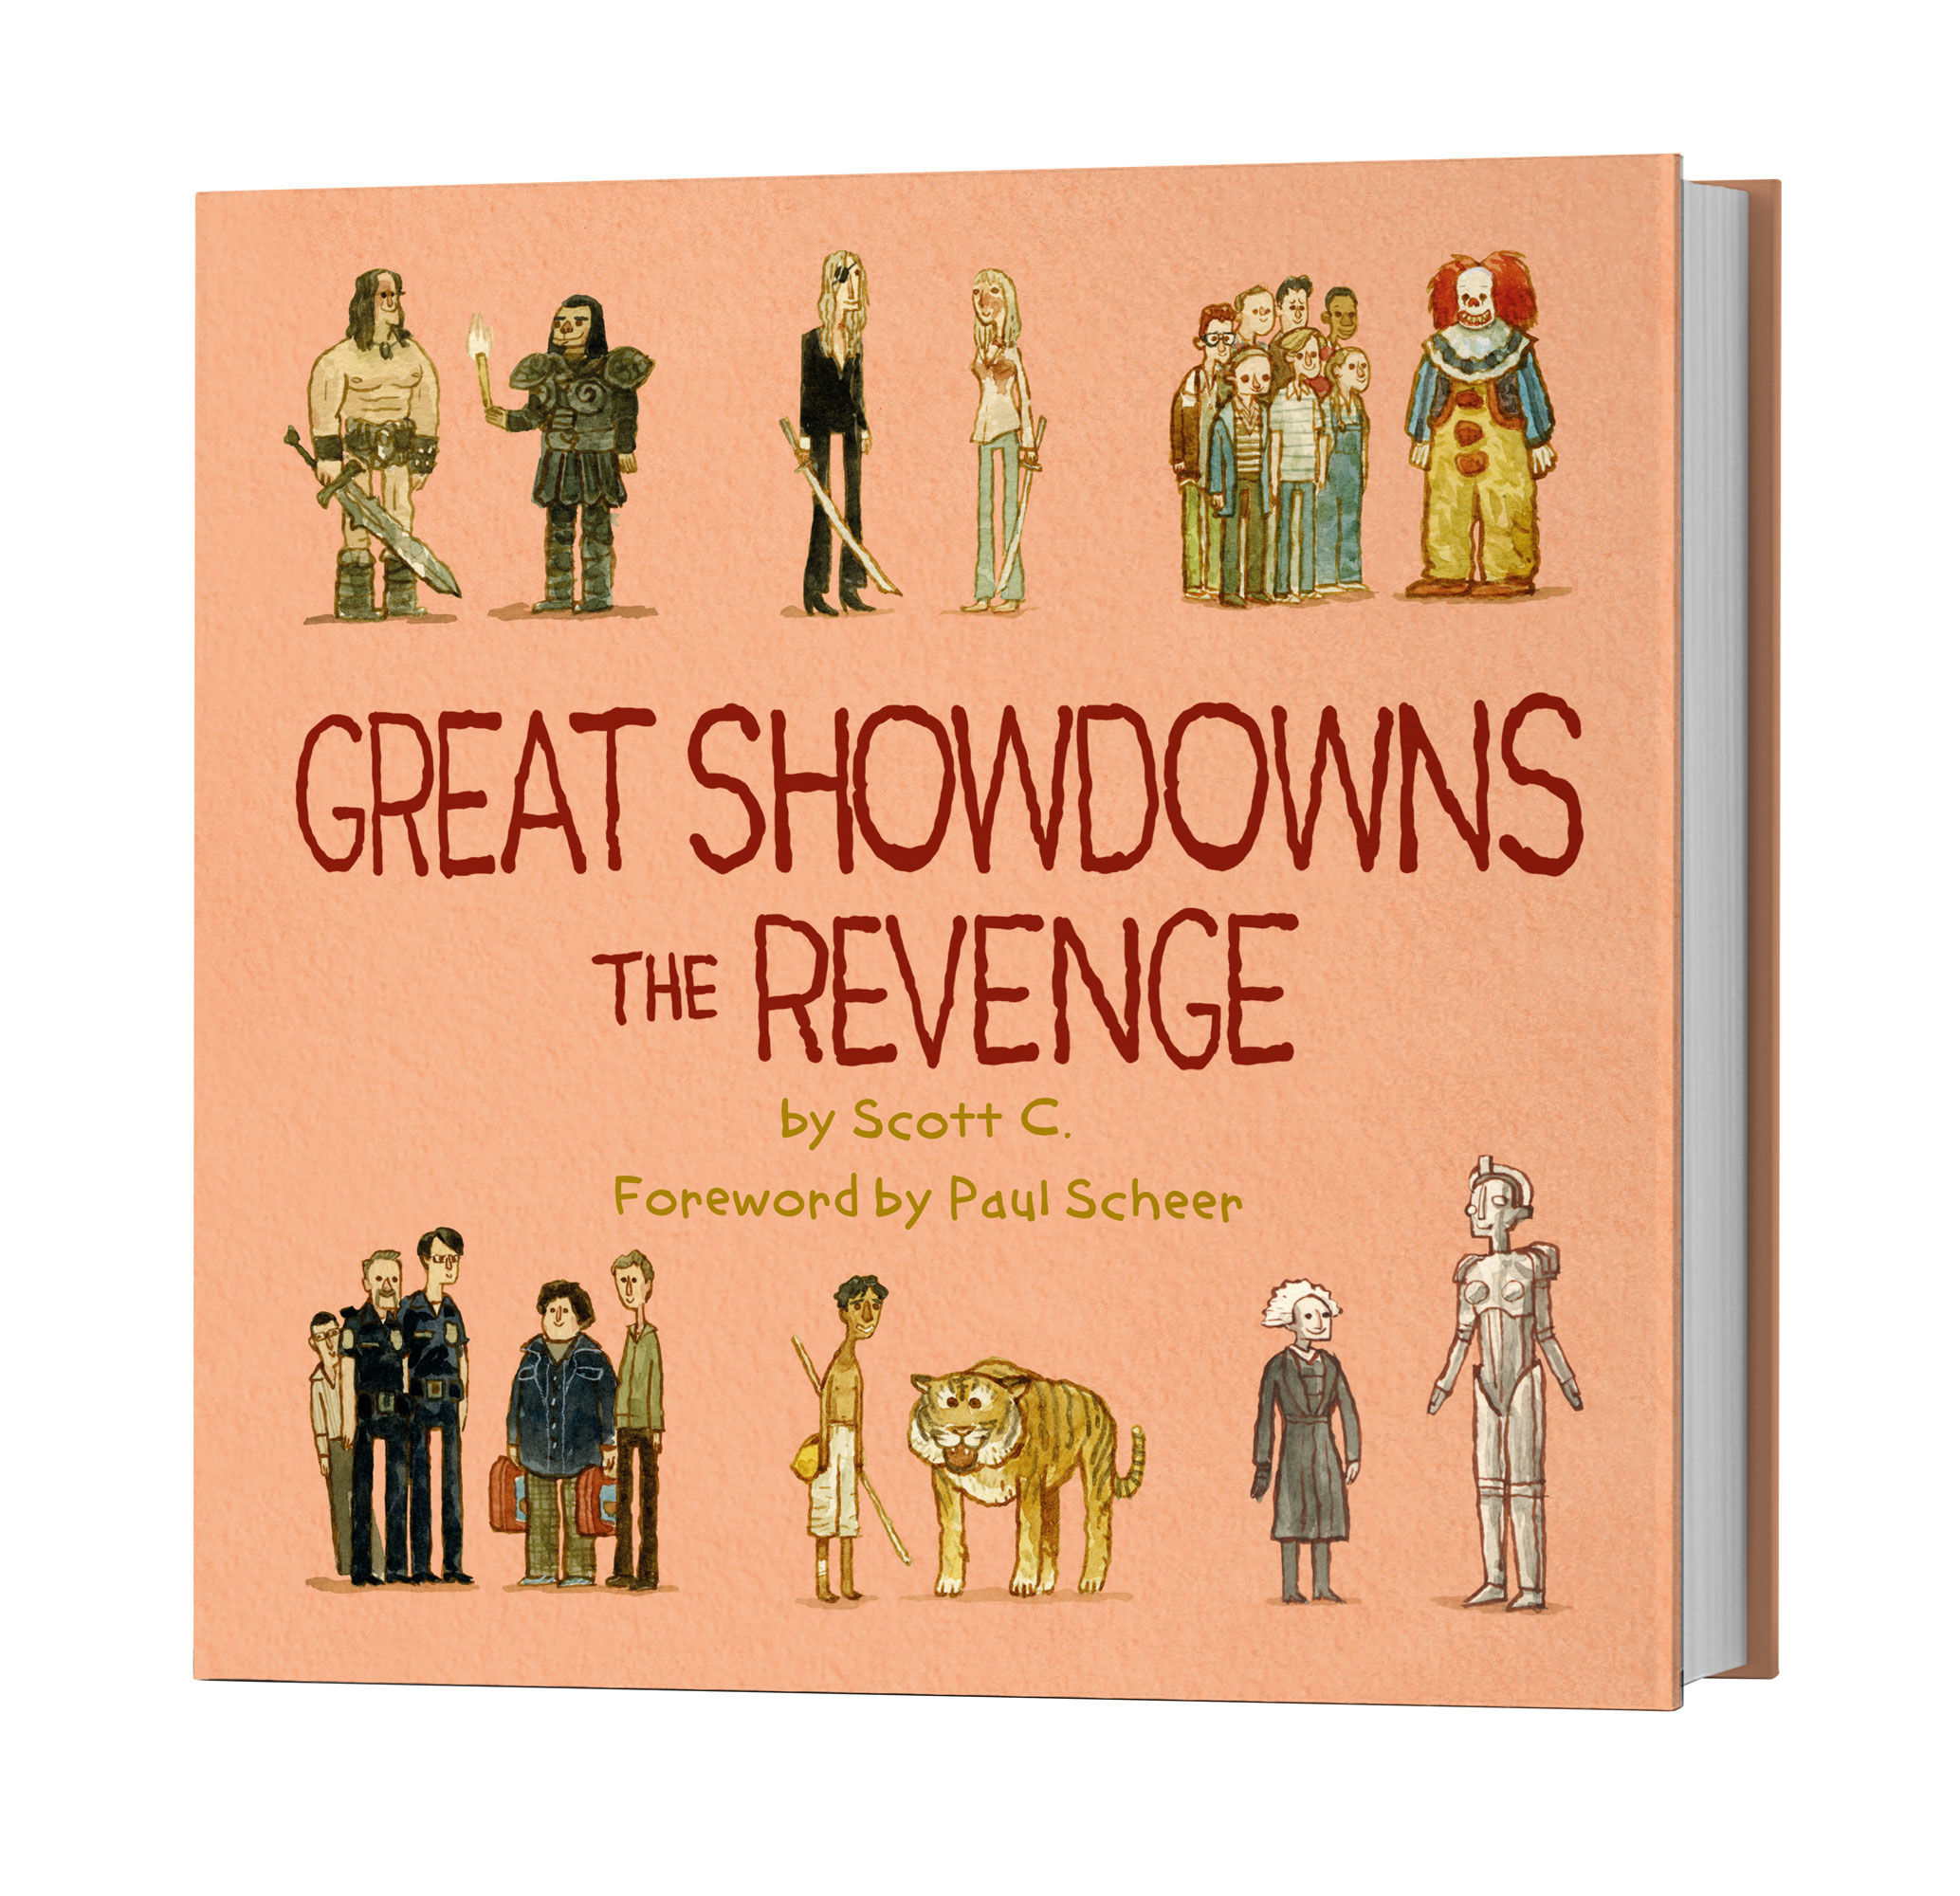 1. GREAT SHOWDOWNS THE REVENGE (the book) – $15